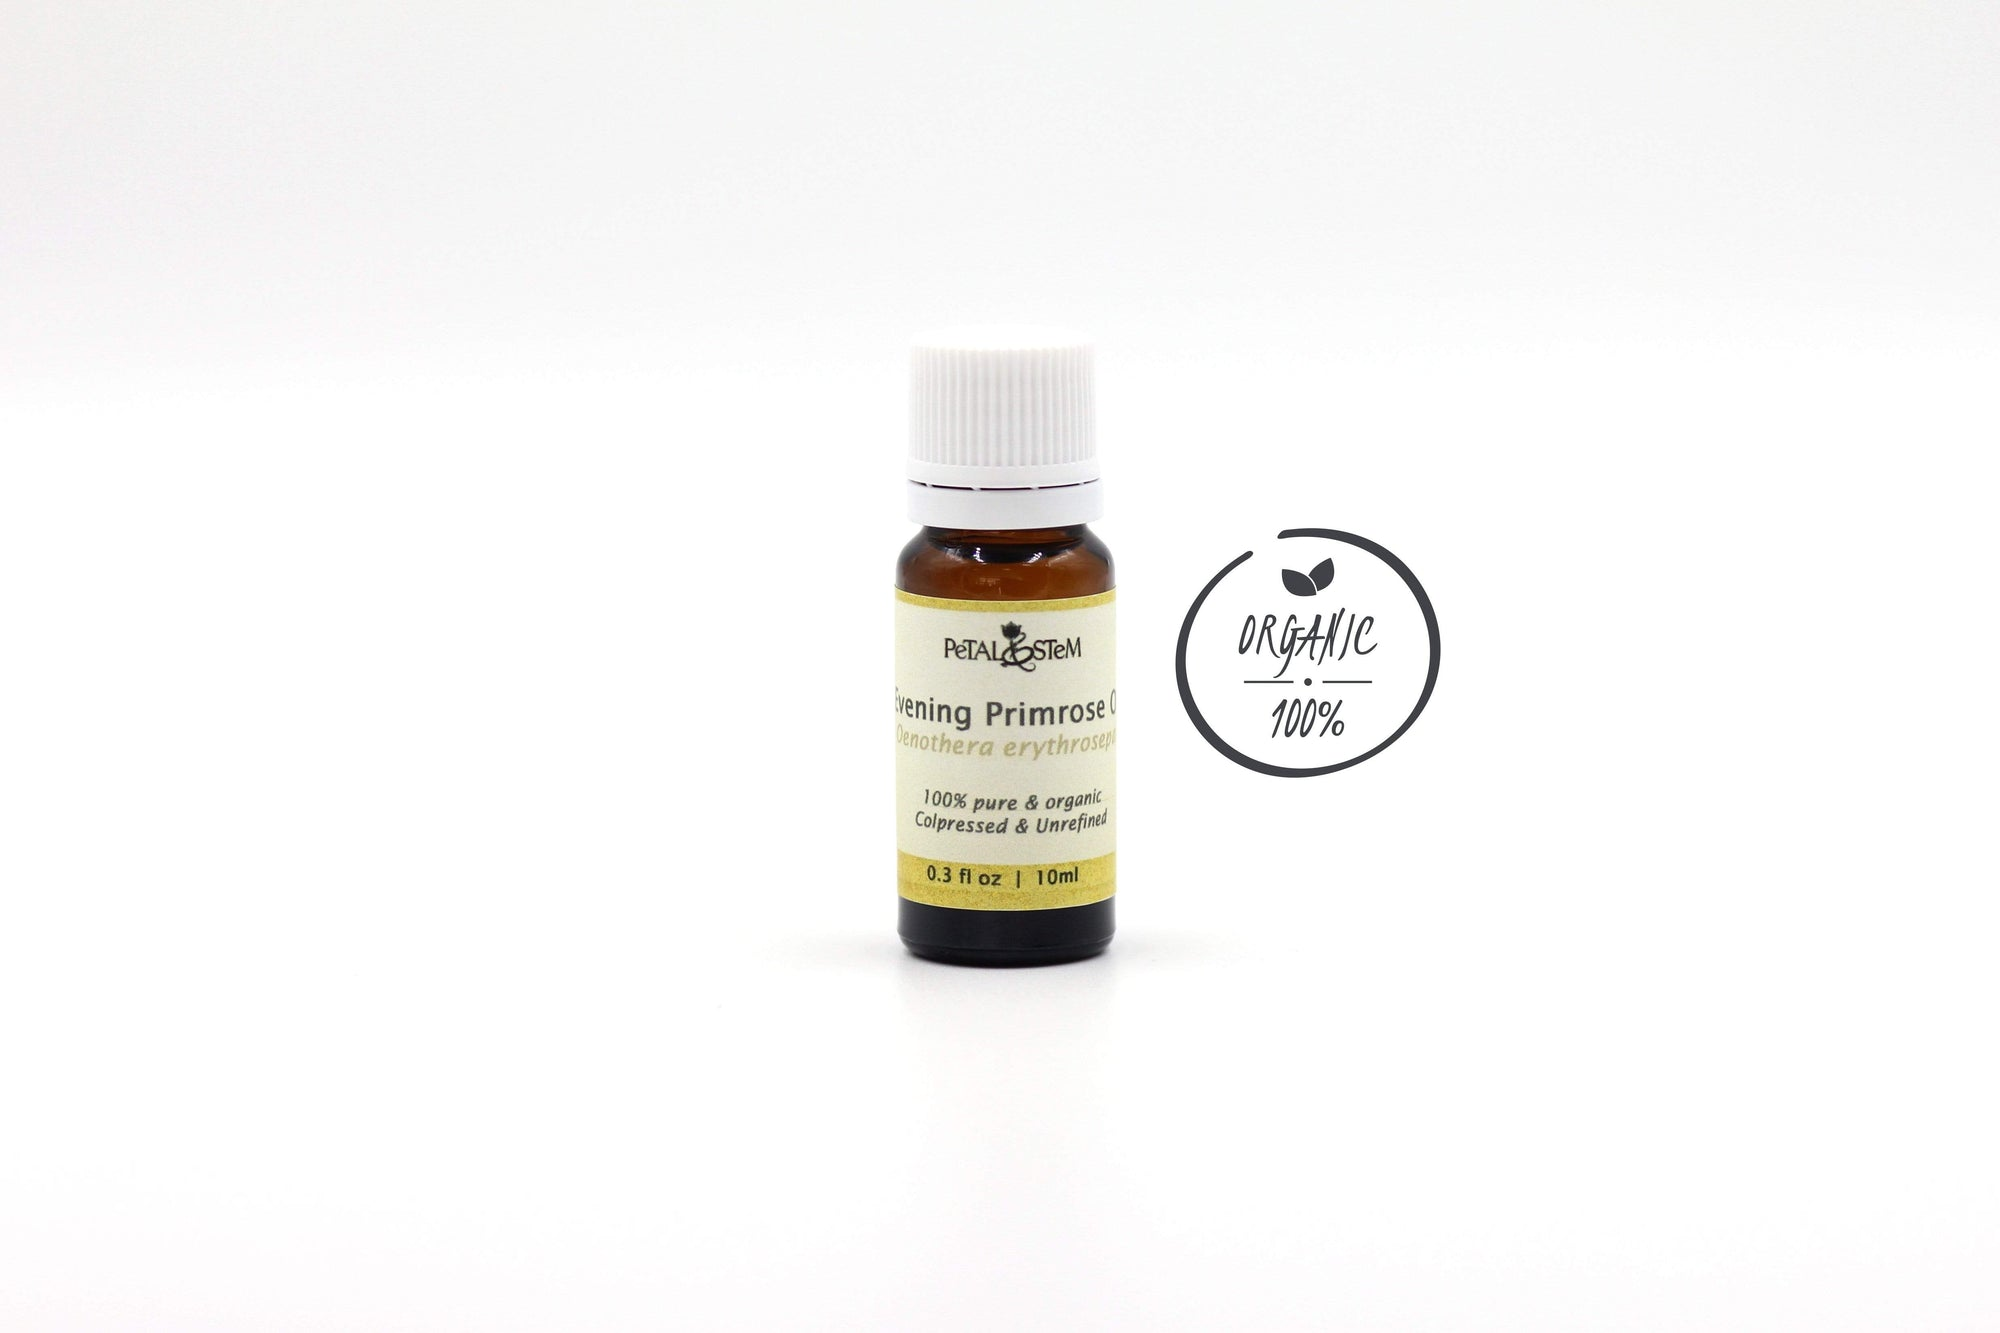 Evening Primrose Carrier Oil, organic - Petal and Stem